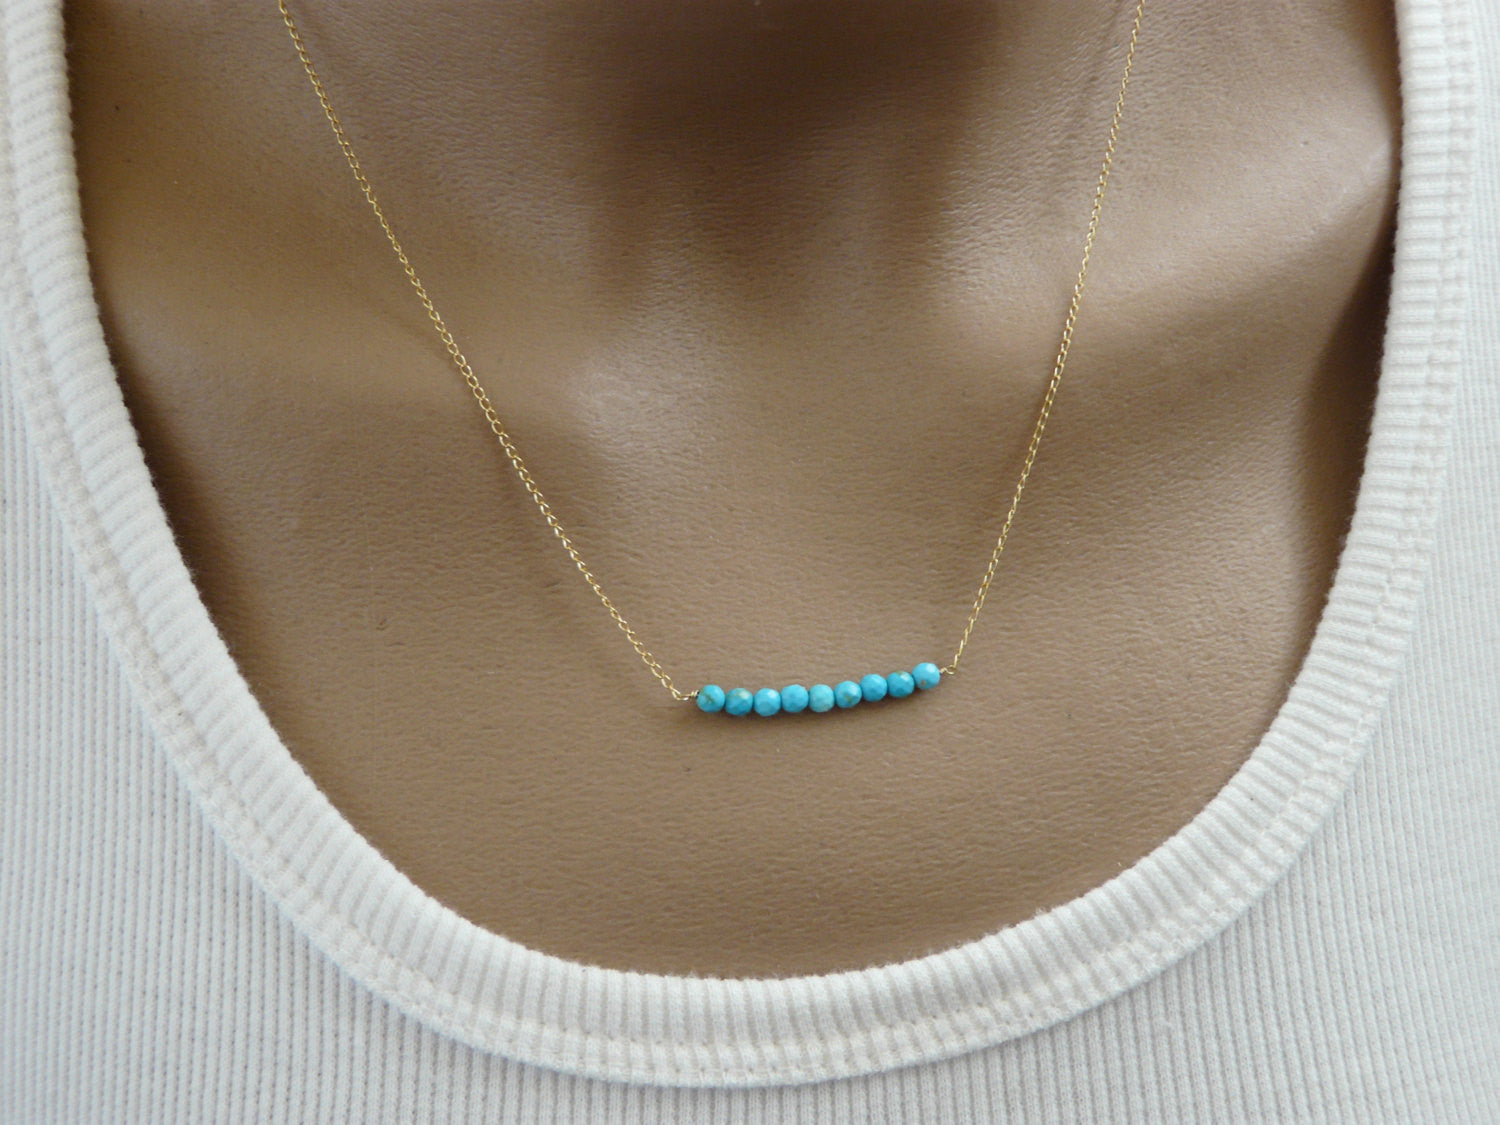 Turquoise bar necklace - OpaLandJewelry